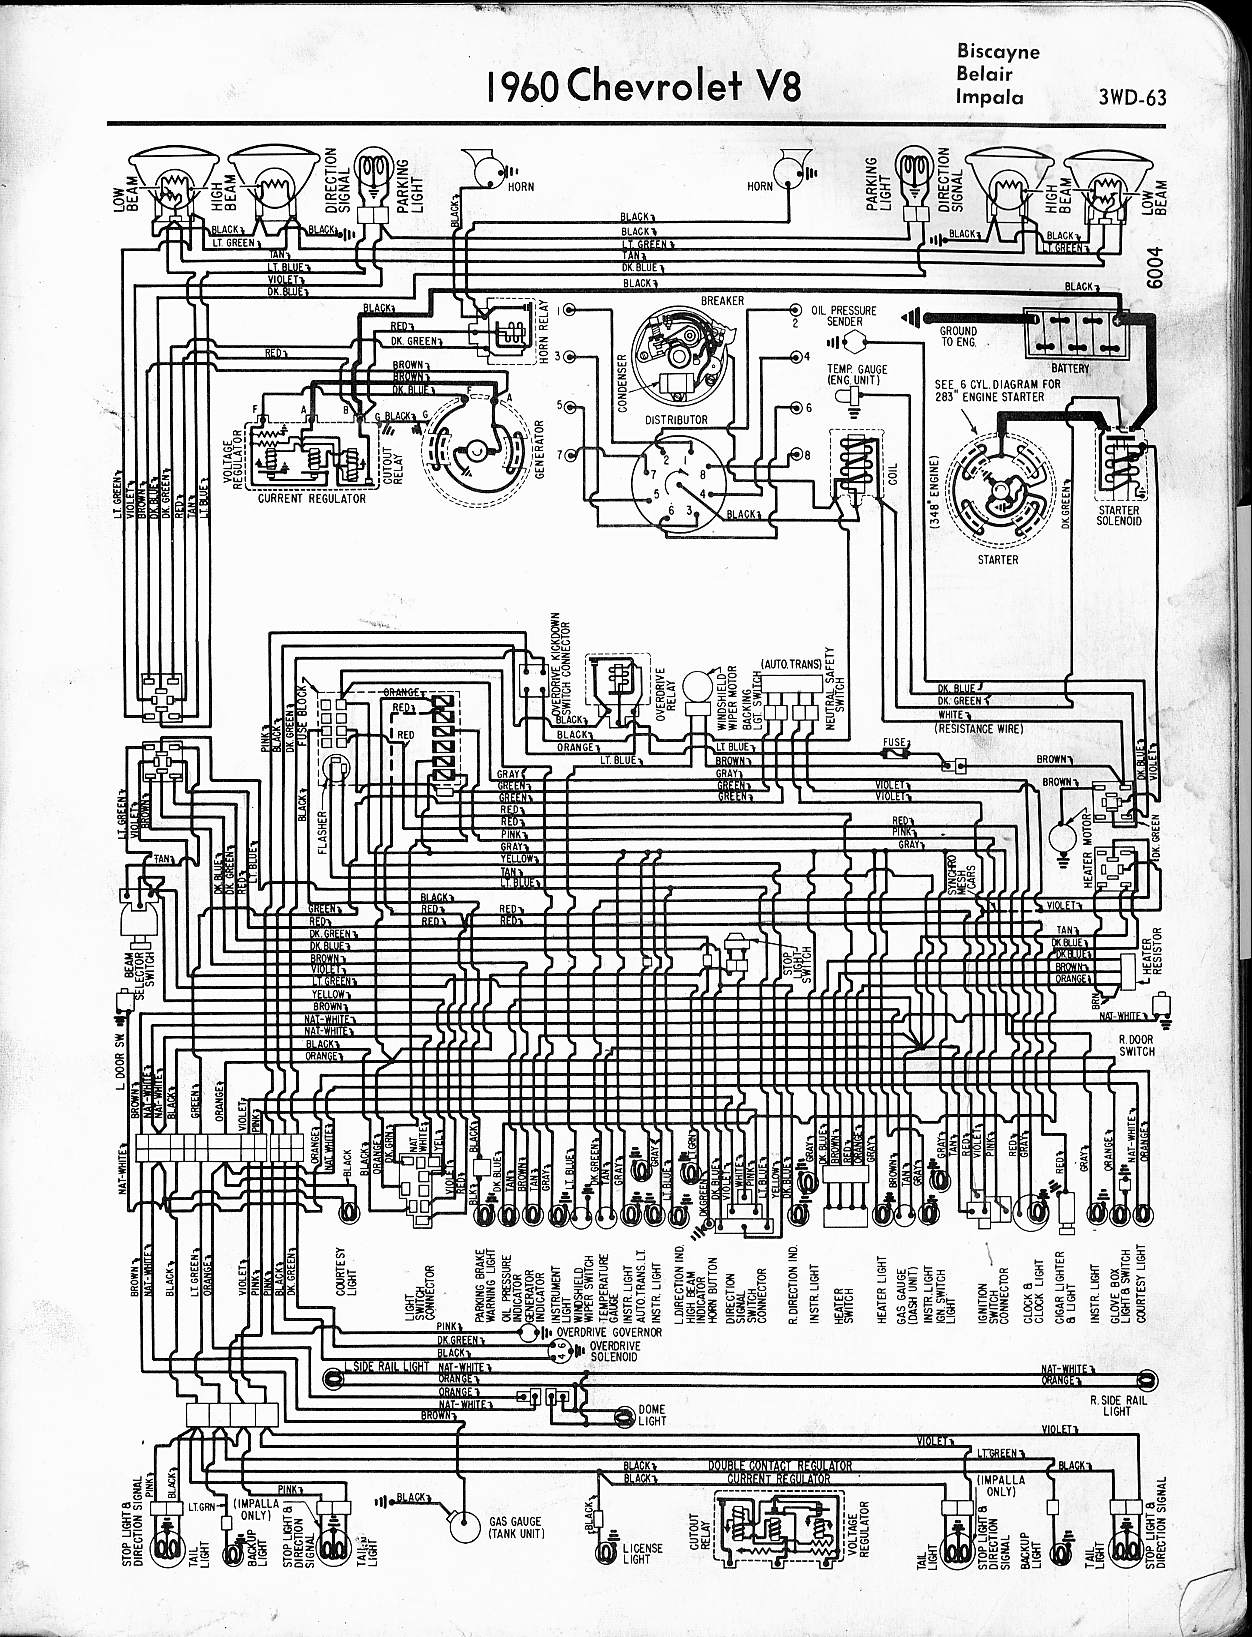 1959 Chevy Wiring Diagram Manual E Books Fuse Box For 2003 Buick Lesabre Impala Detailed1959